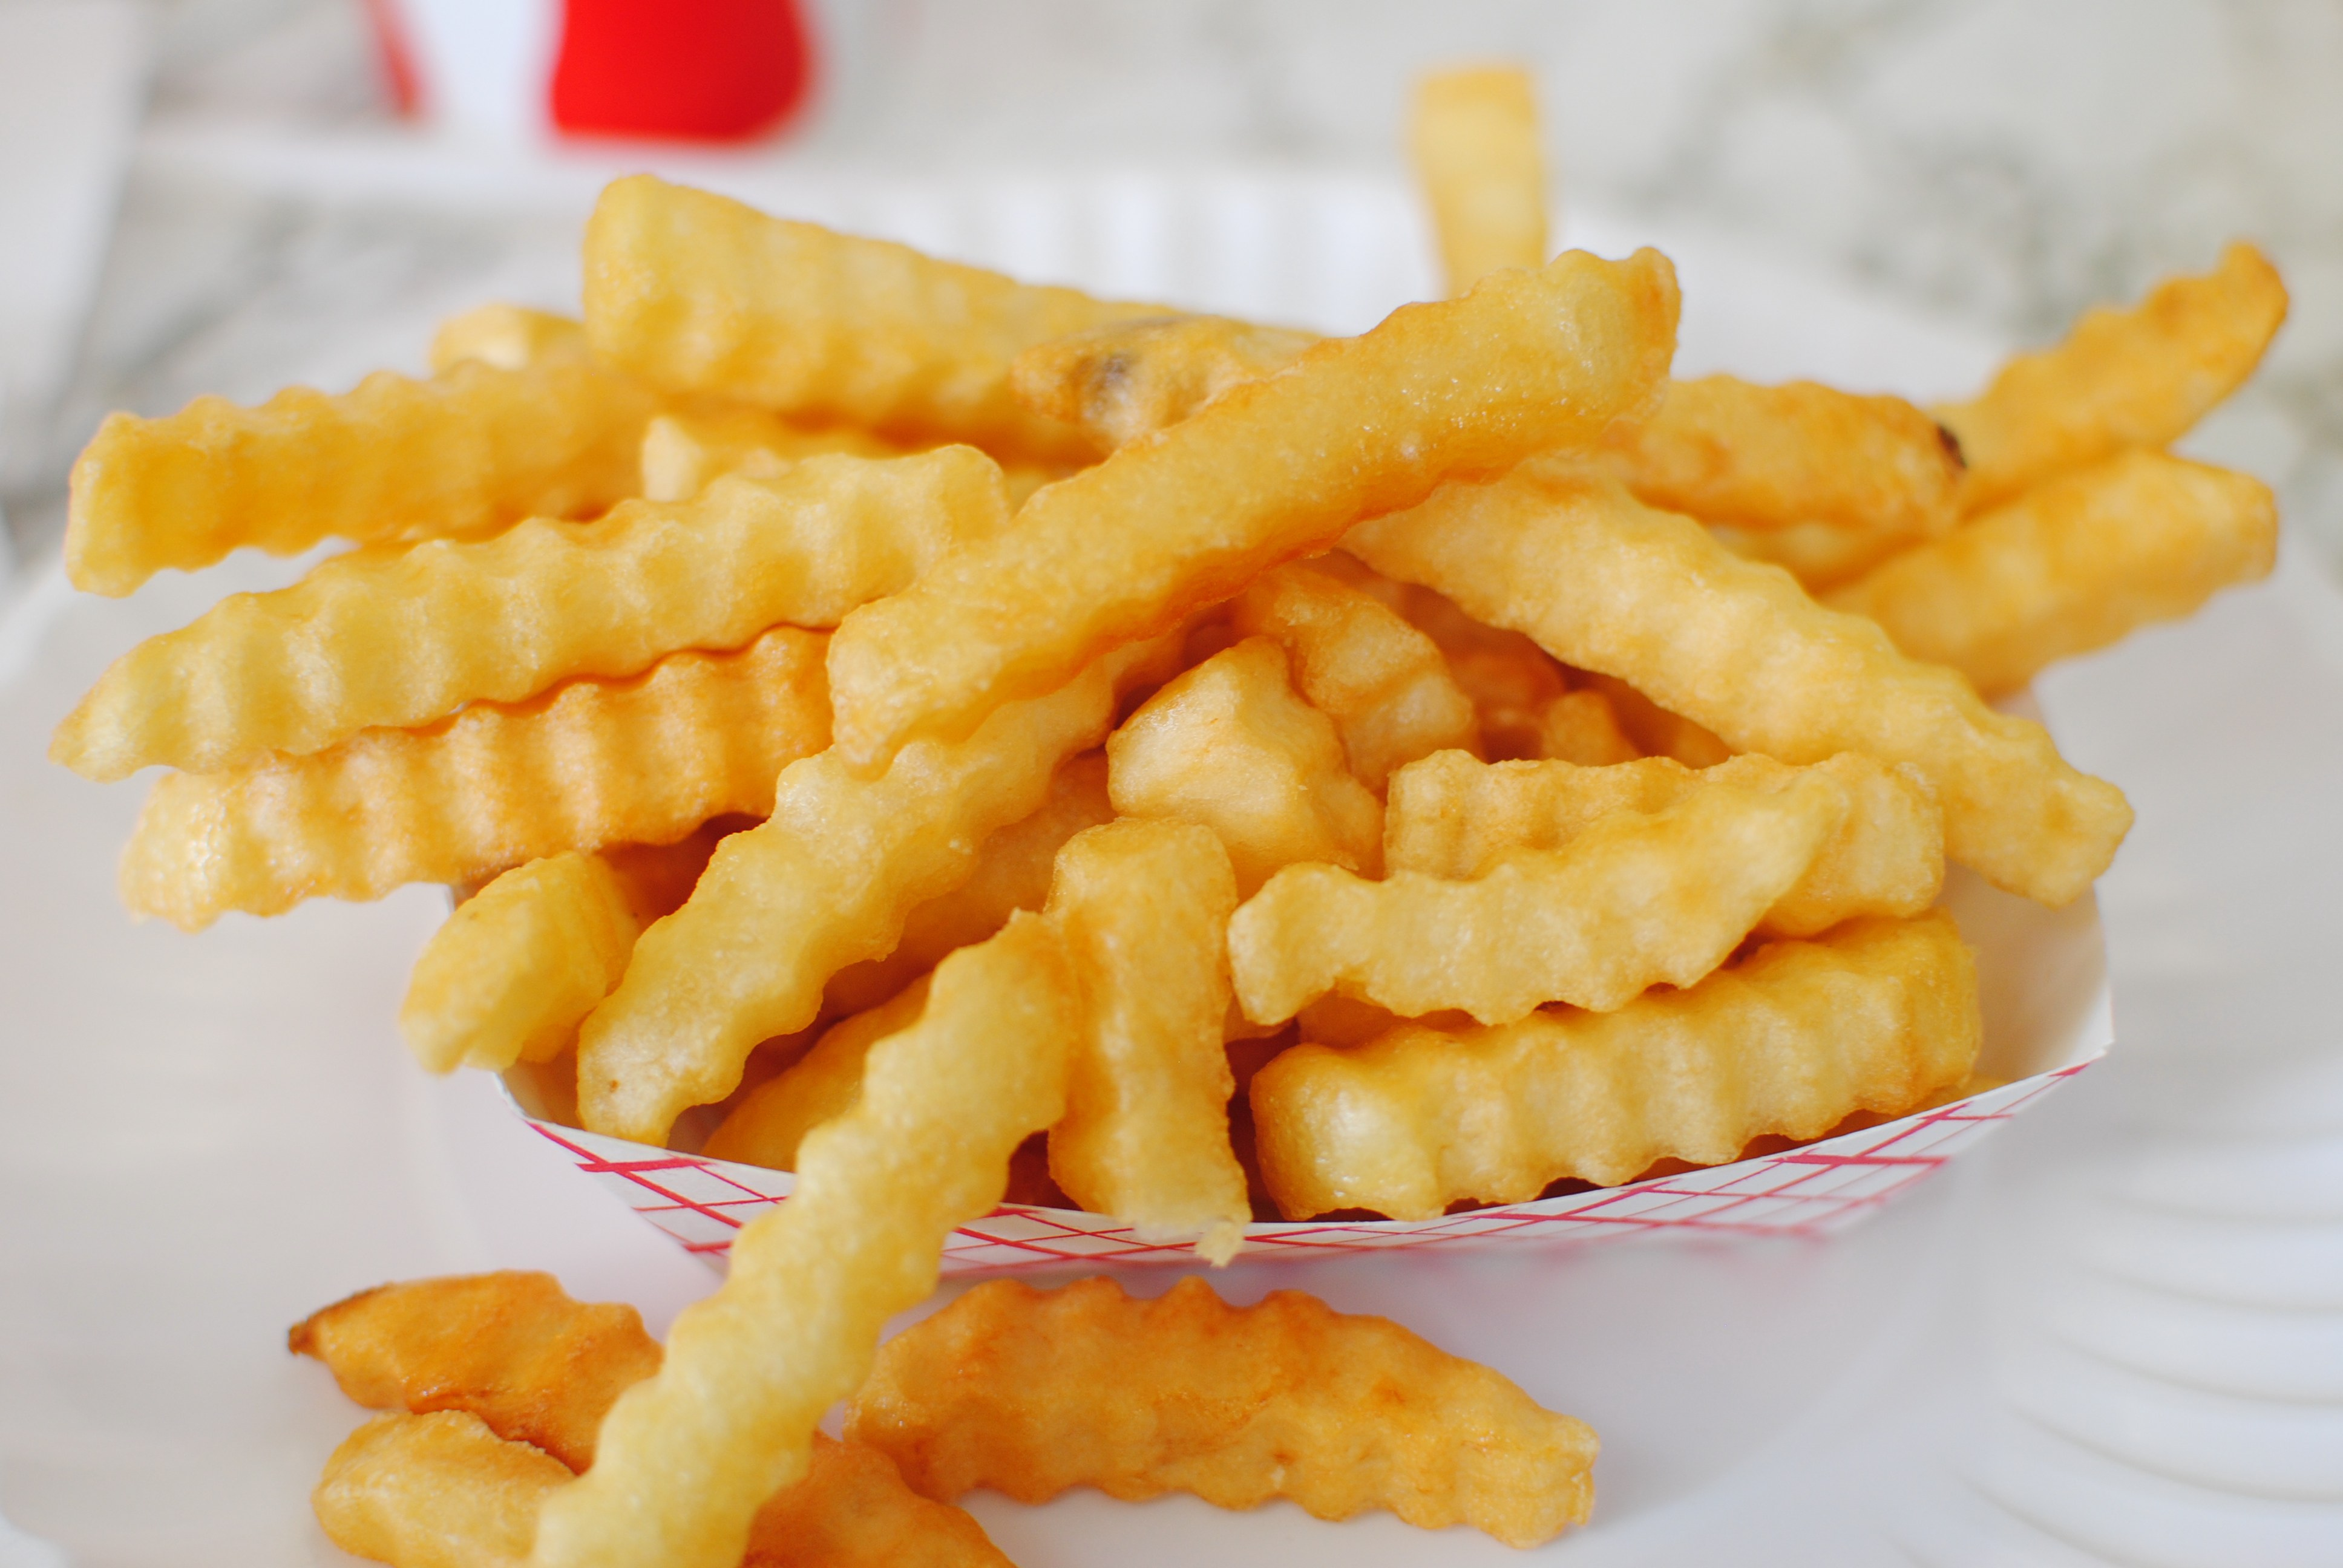 At least the fries were French | Brad Warthen